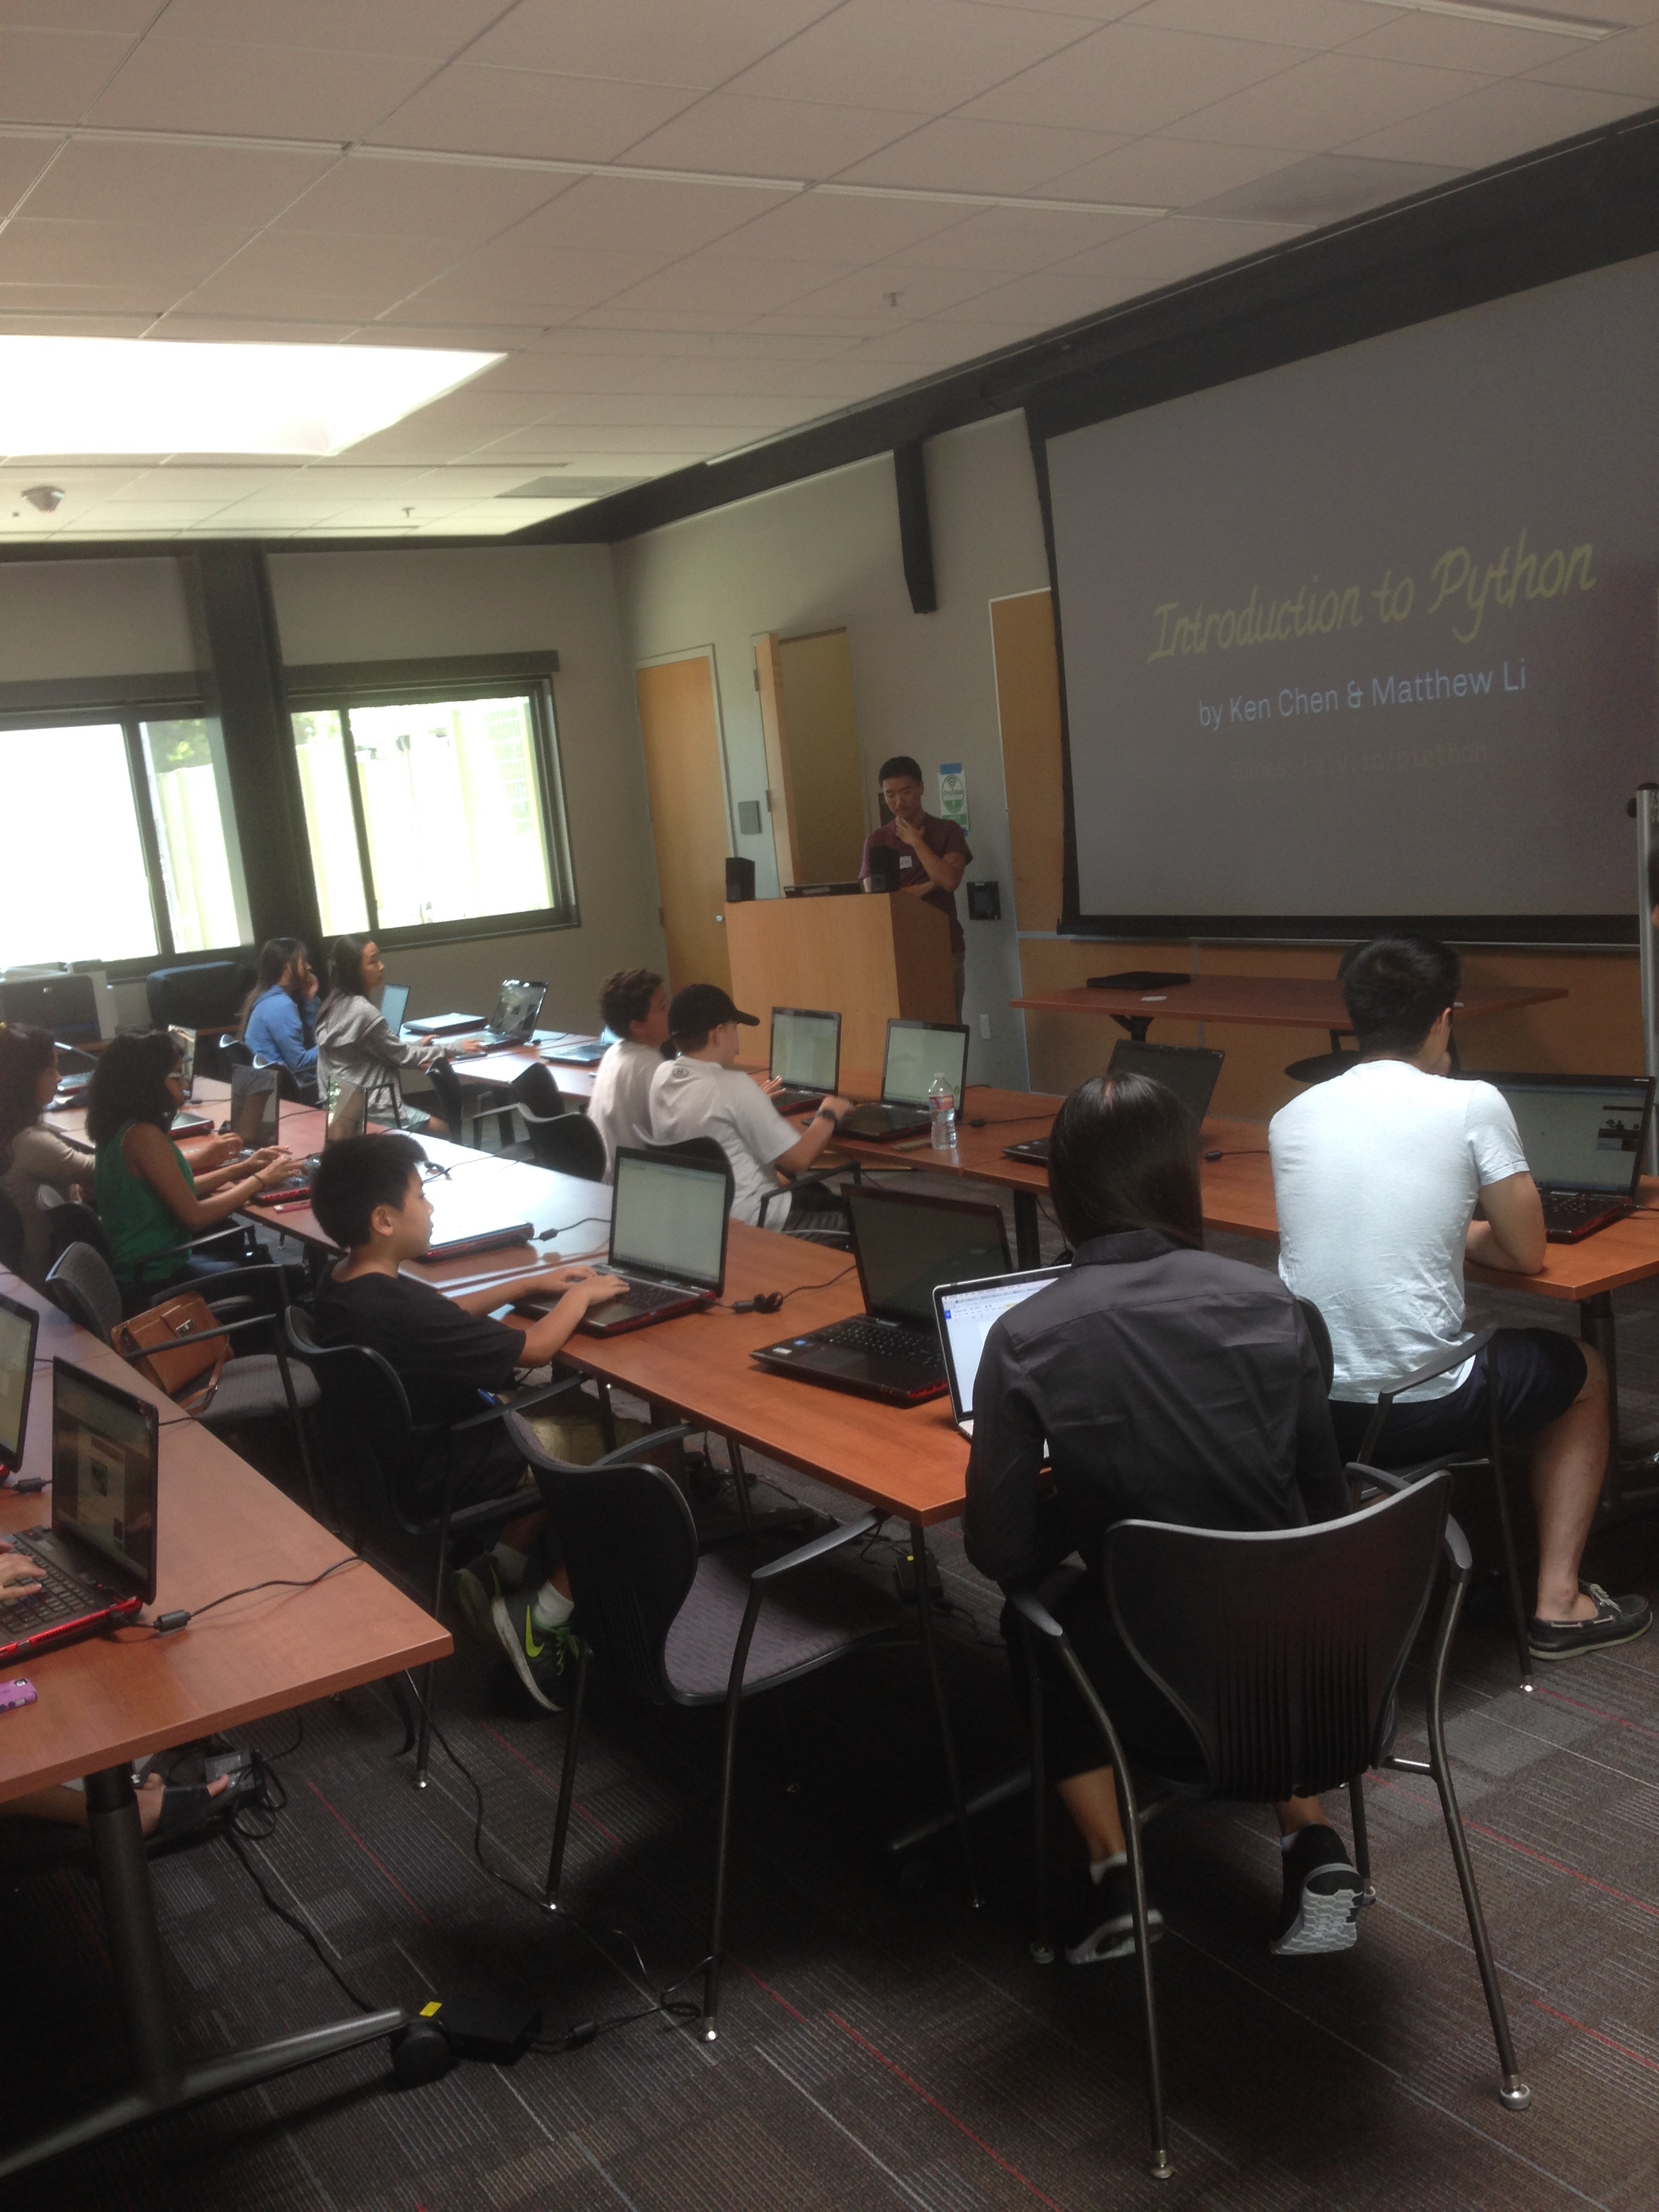 From Python to Palantir, TEC event inspires Palo Alto teens